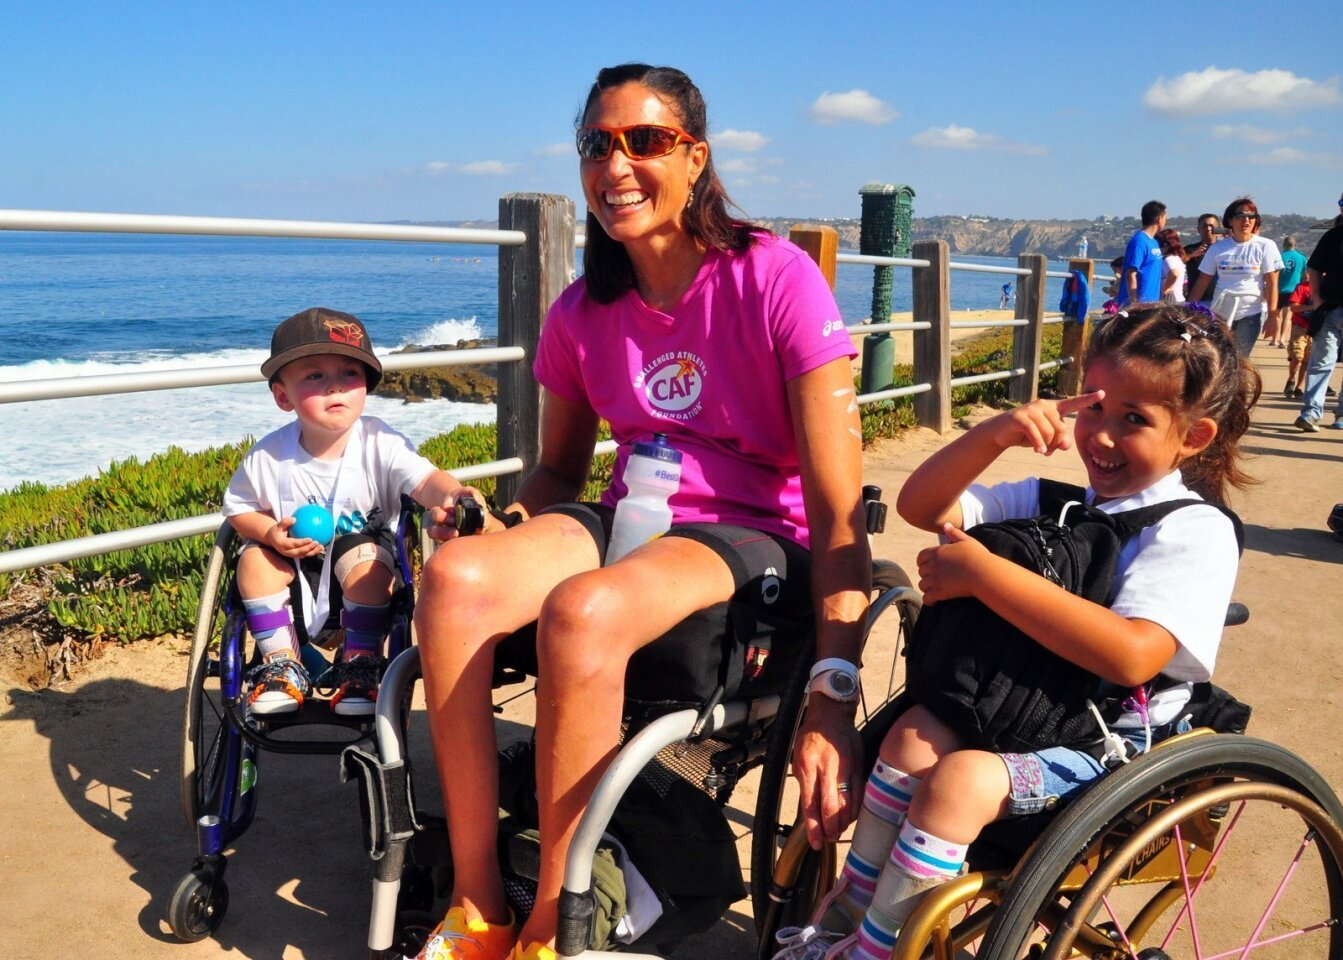 Tricia Downing of Denver, Colorado makes new friends with 3-year-old Abel Rose and 6-year-old Emma Mondragon. The smiles say it all! — at the Challenged Athletes Foundation's 21st annual San Diego Triathlon Challenge Oct. 19, 2014 at La Jolla Cove.